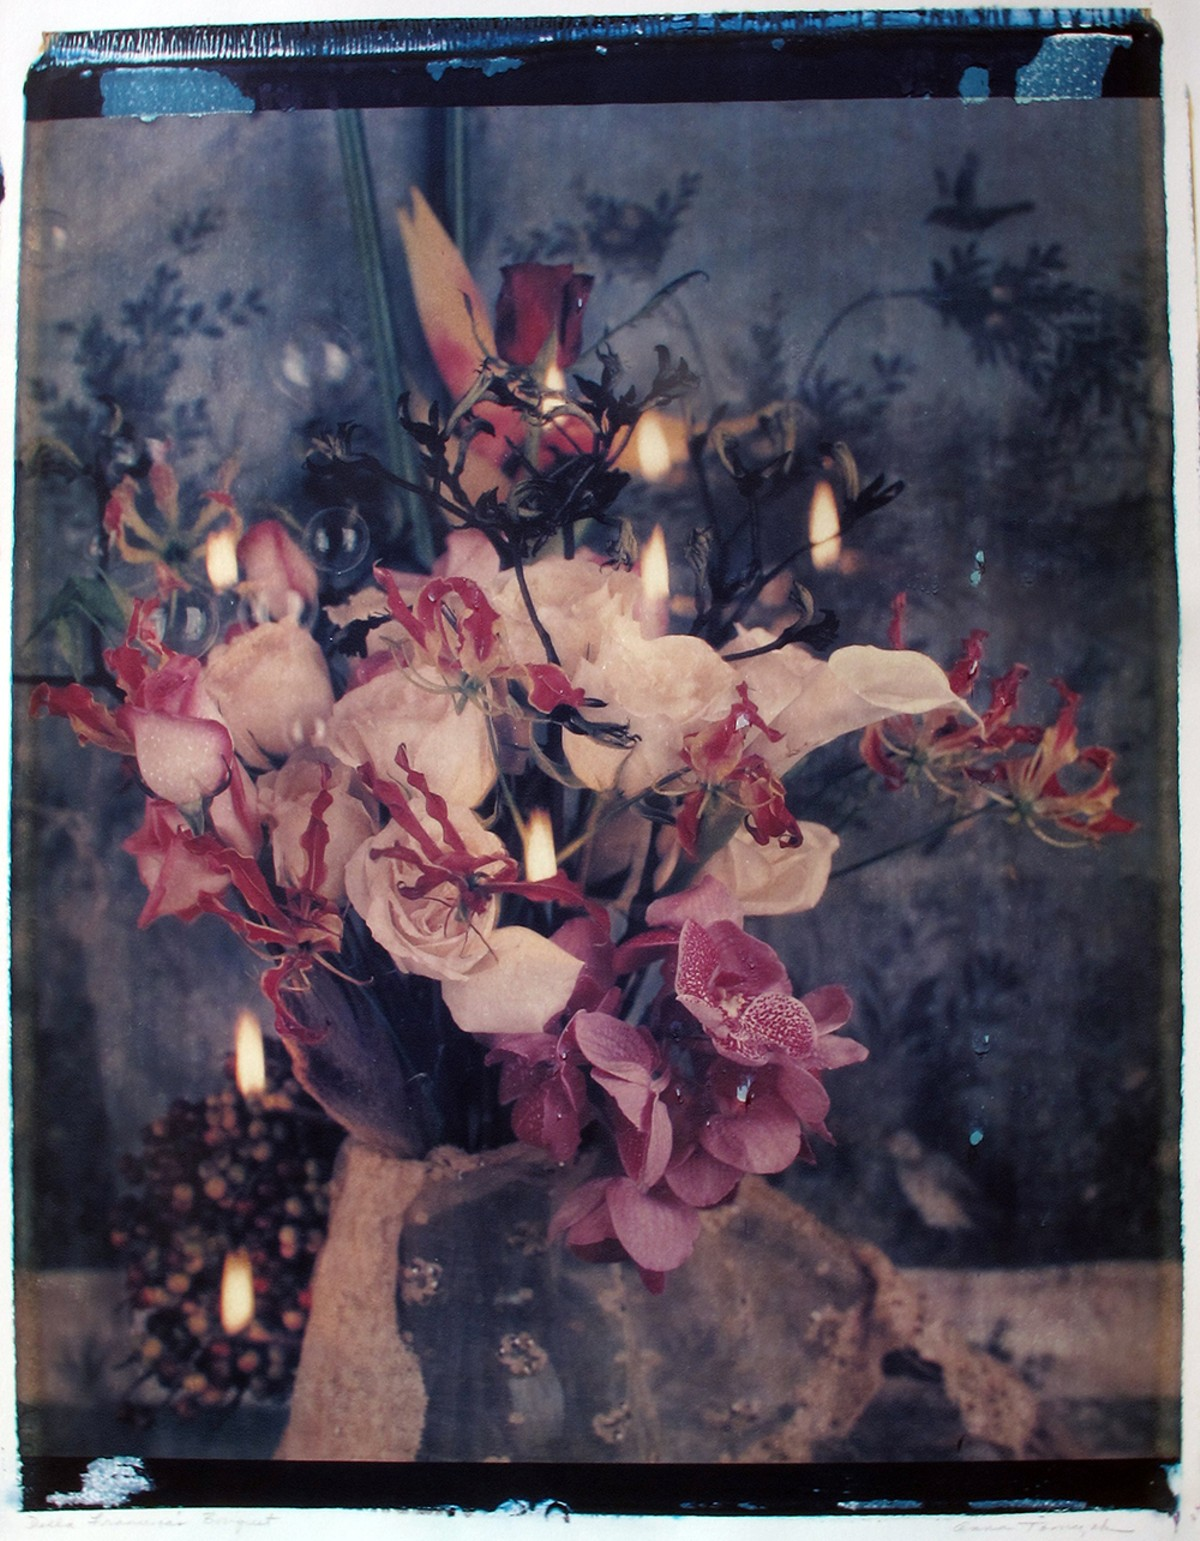 'Della Francesca's Bouquet,' Polaroid transfer by Anna Tomczak